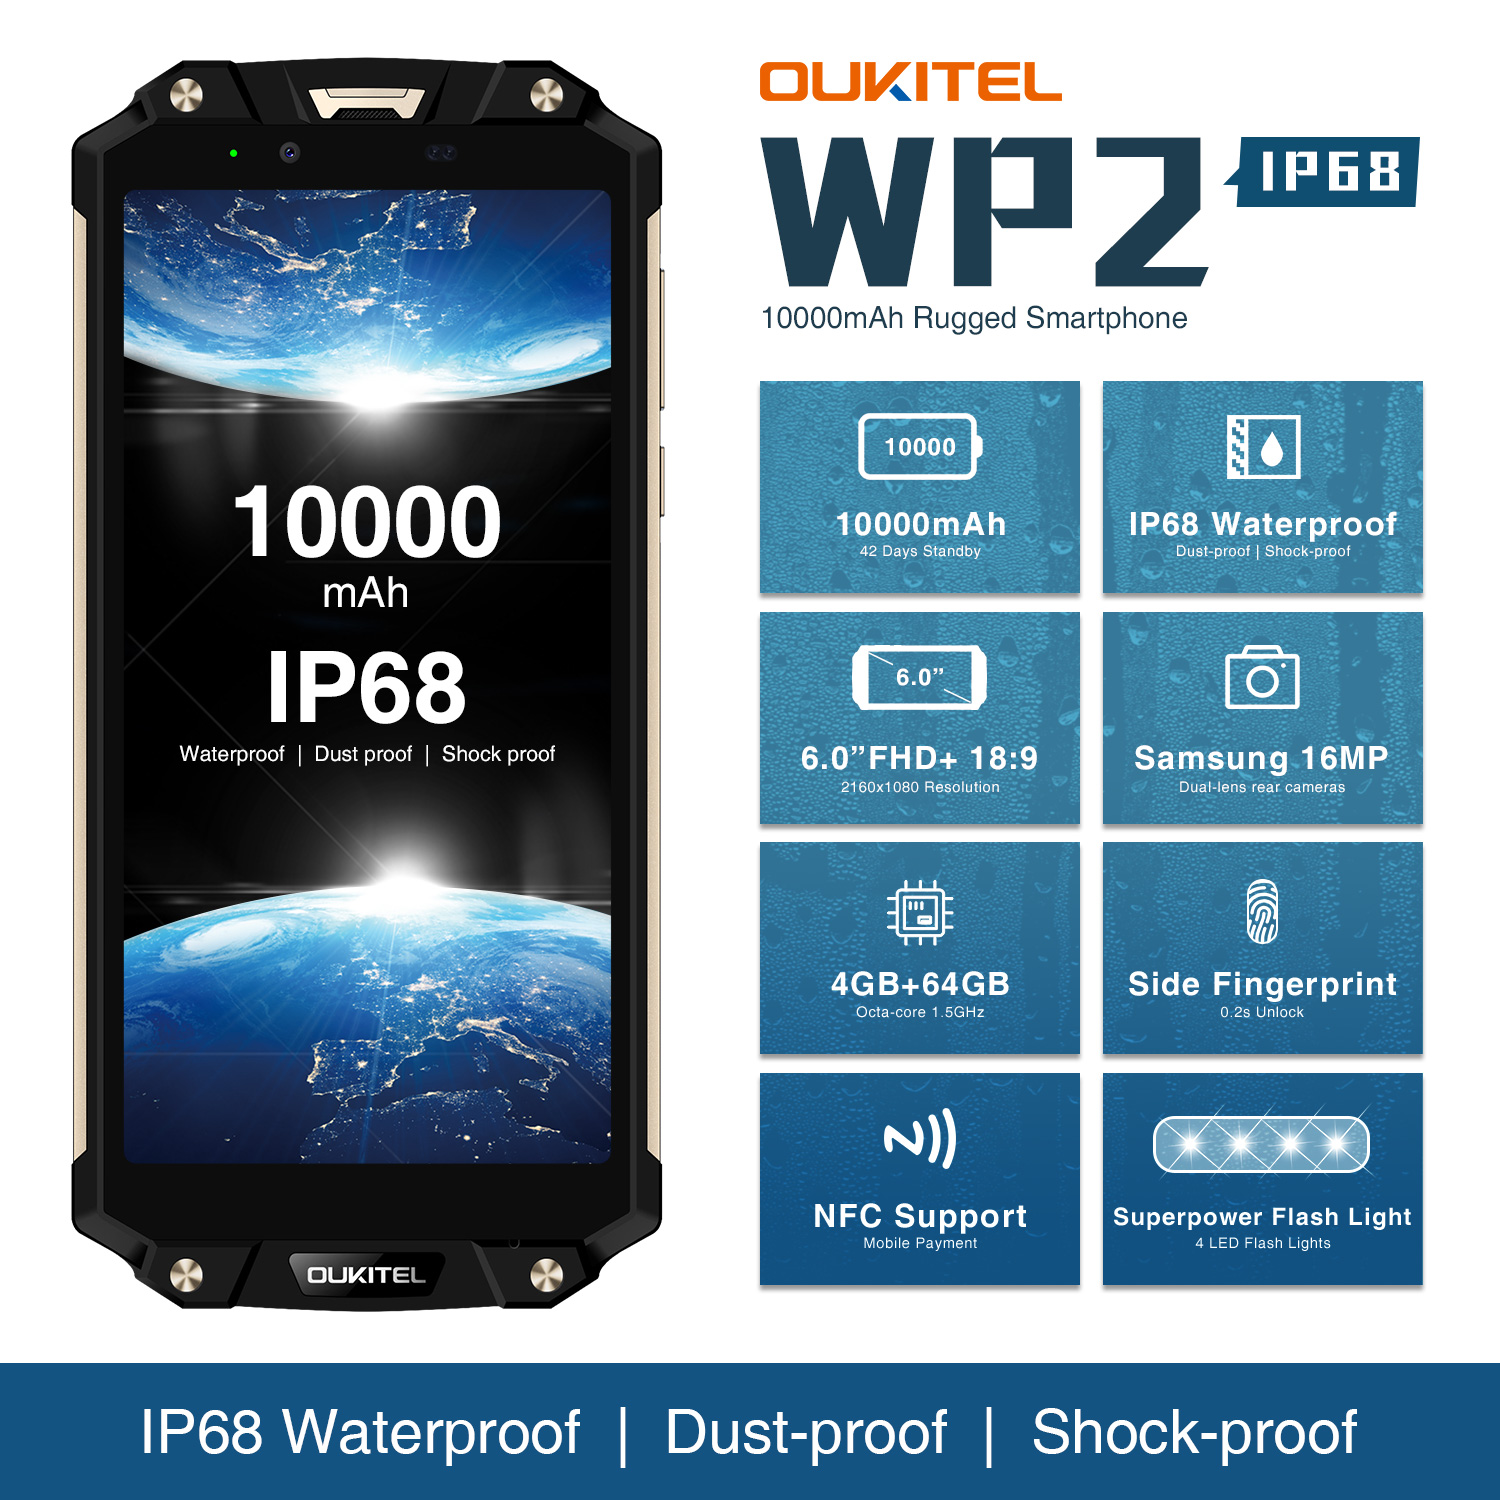 OUKITEL WP2 4GB 64GB IP68 Waterproof WCDMA/GSM/LTE Nfc Adaptive Fast Charge Octa Core